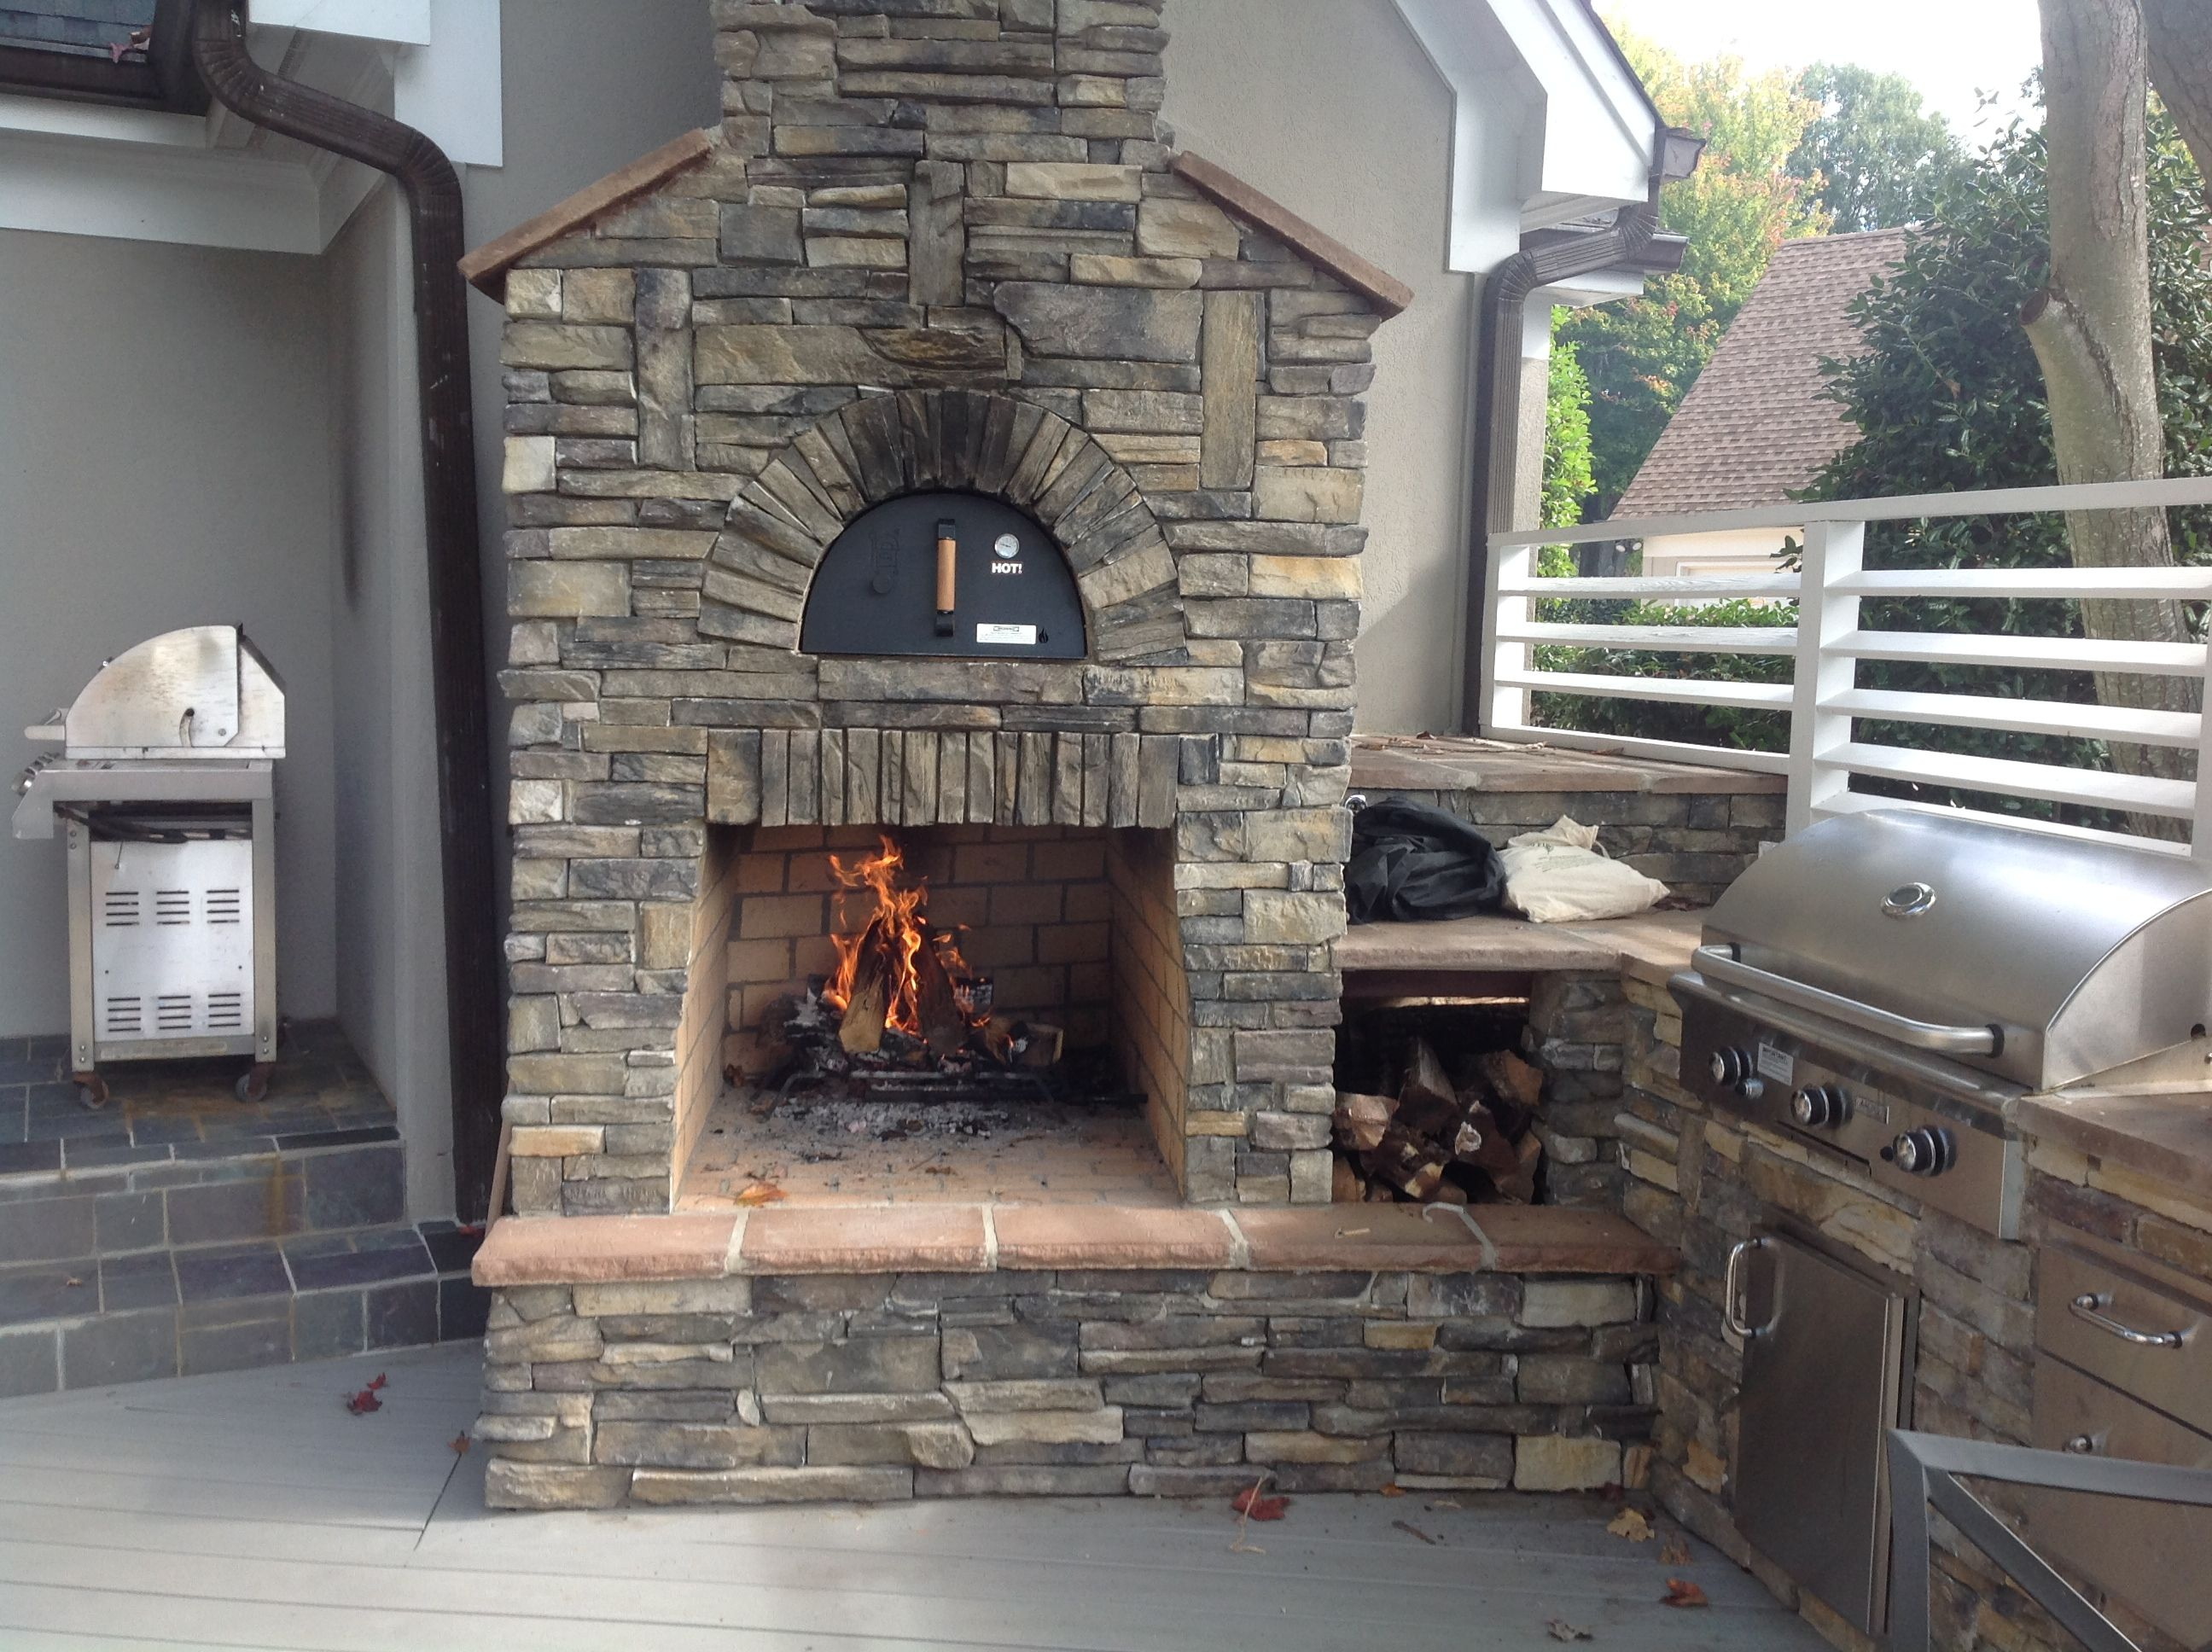 custom pizza oven integrated into an outdoor fireplace and